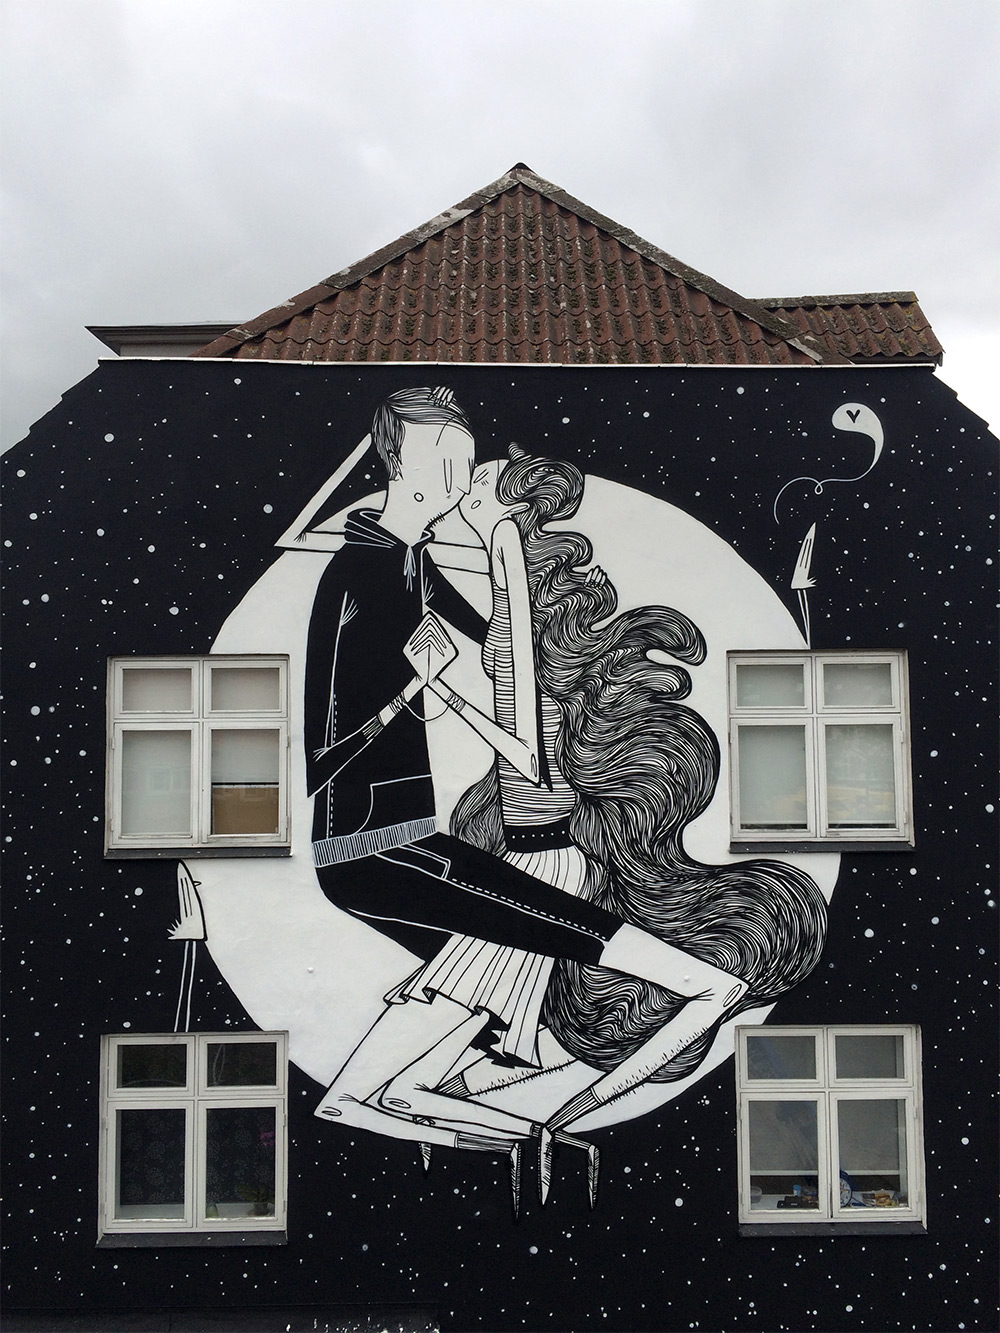 Funny Black & White Mural Artworks